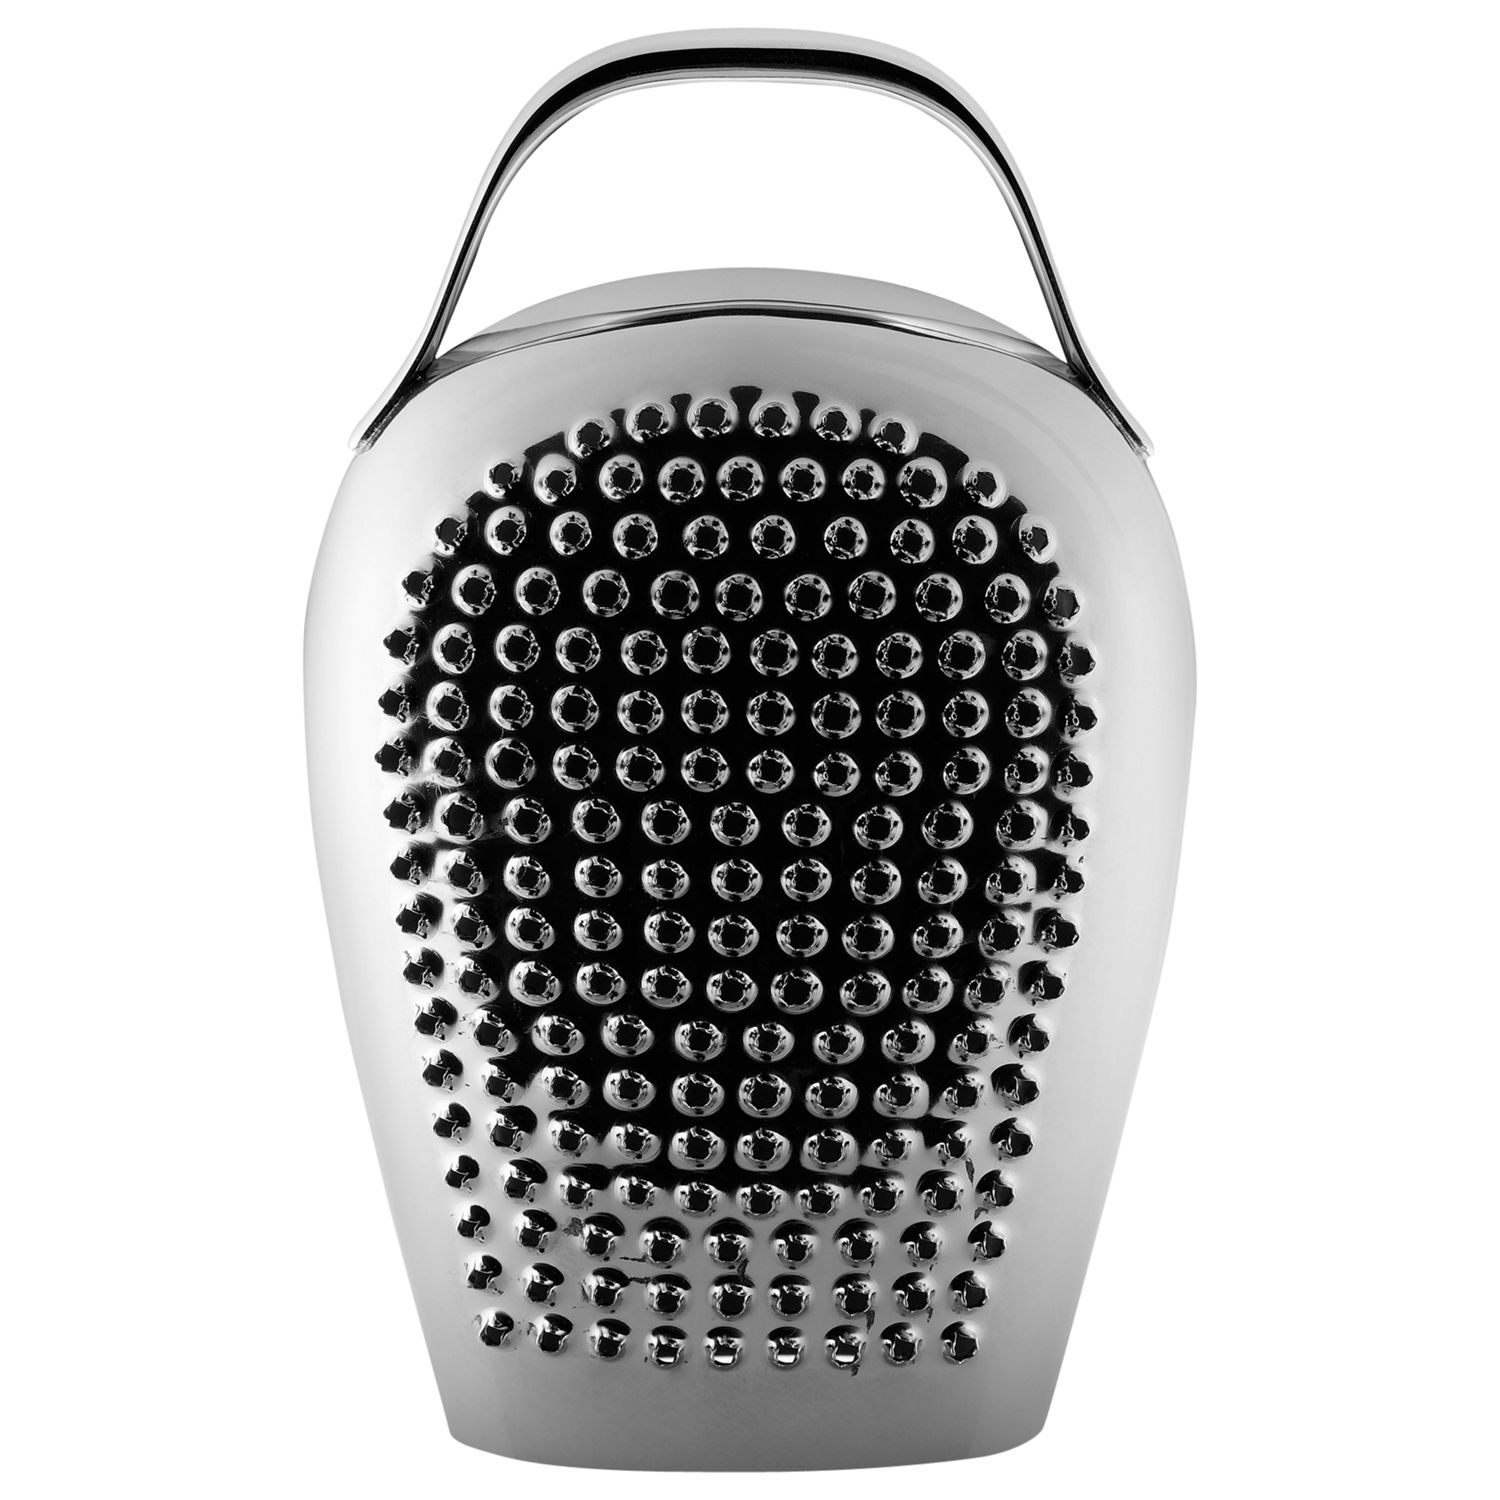 Alessi Alessi Cheese Please Grater, Stainless Steel